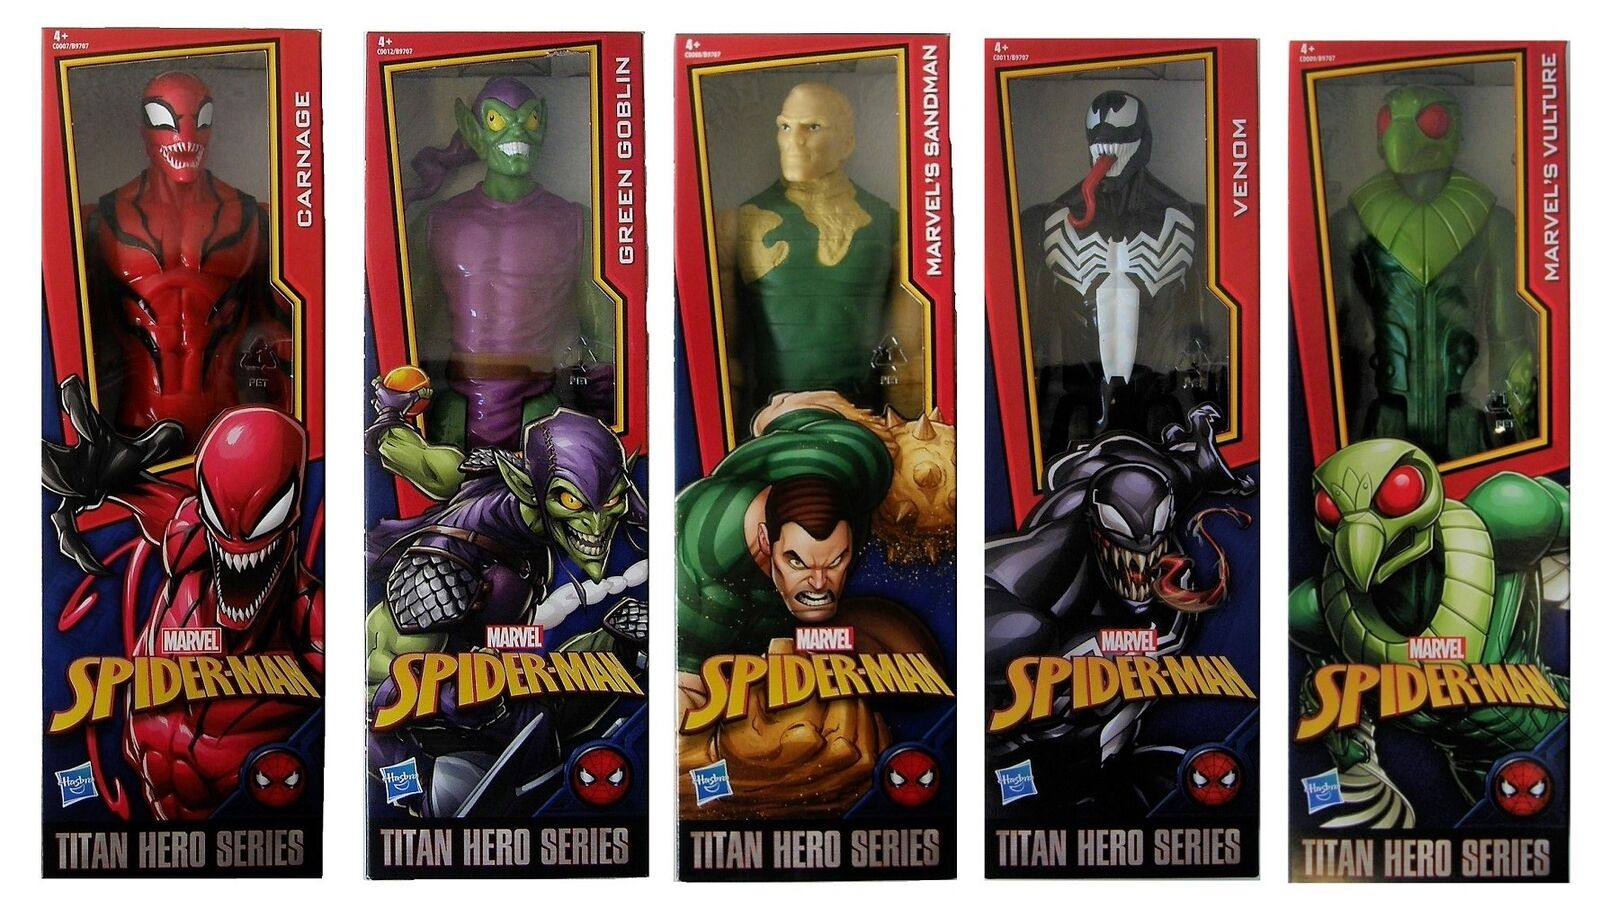 Marvel Action Figures Titan Hero Series 30 cm spiderman villains from movies New